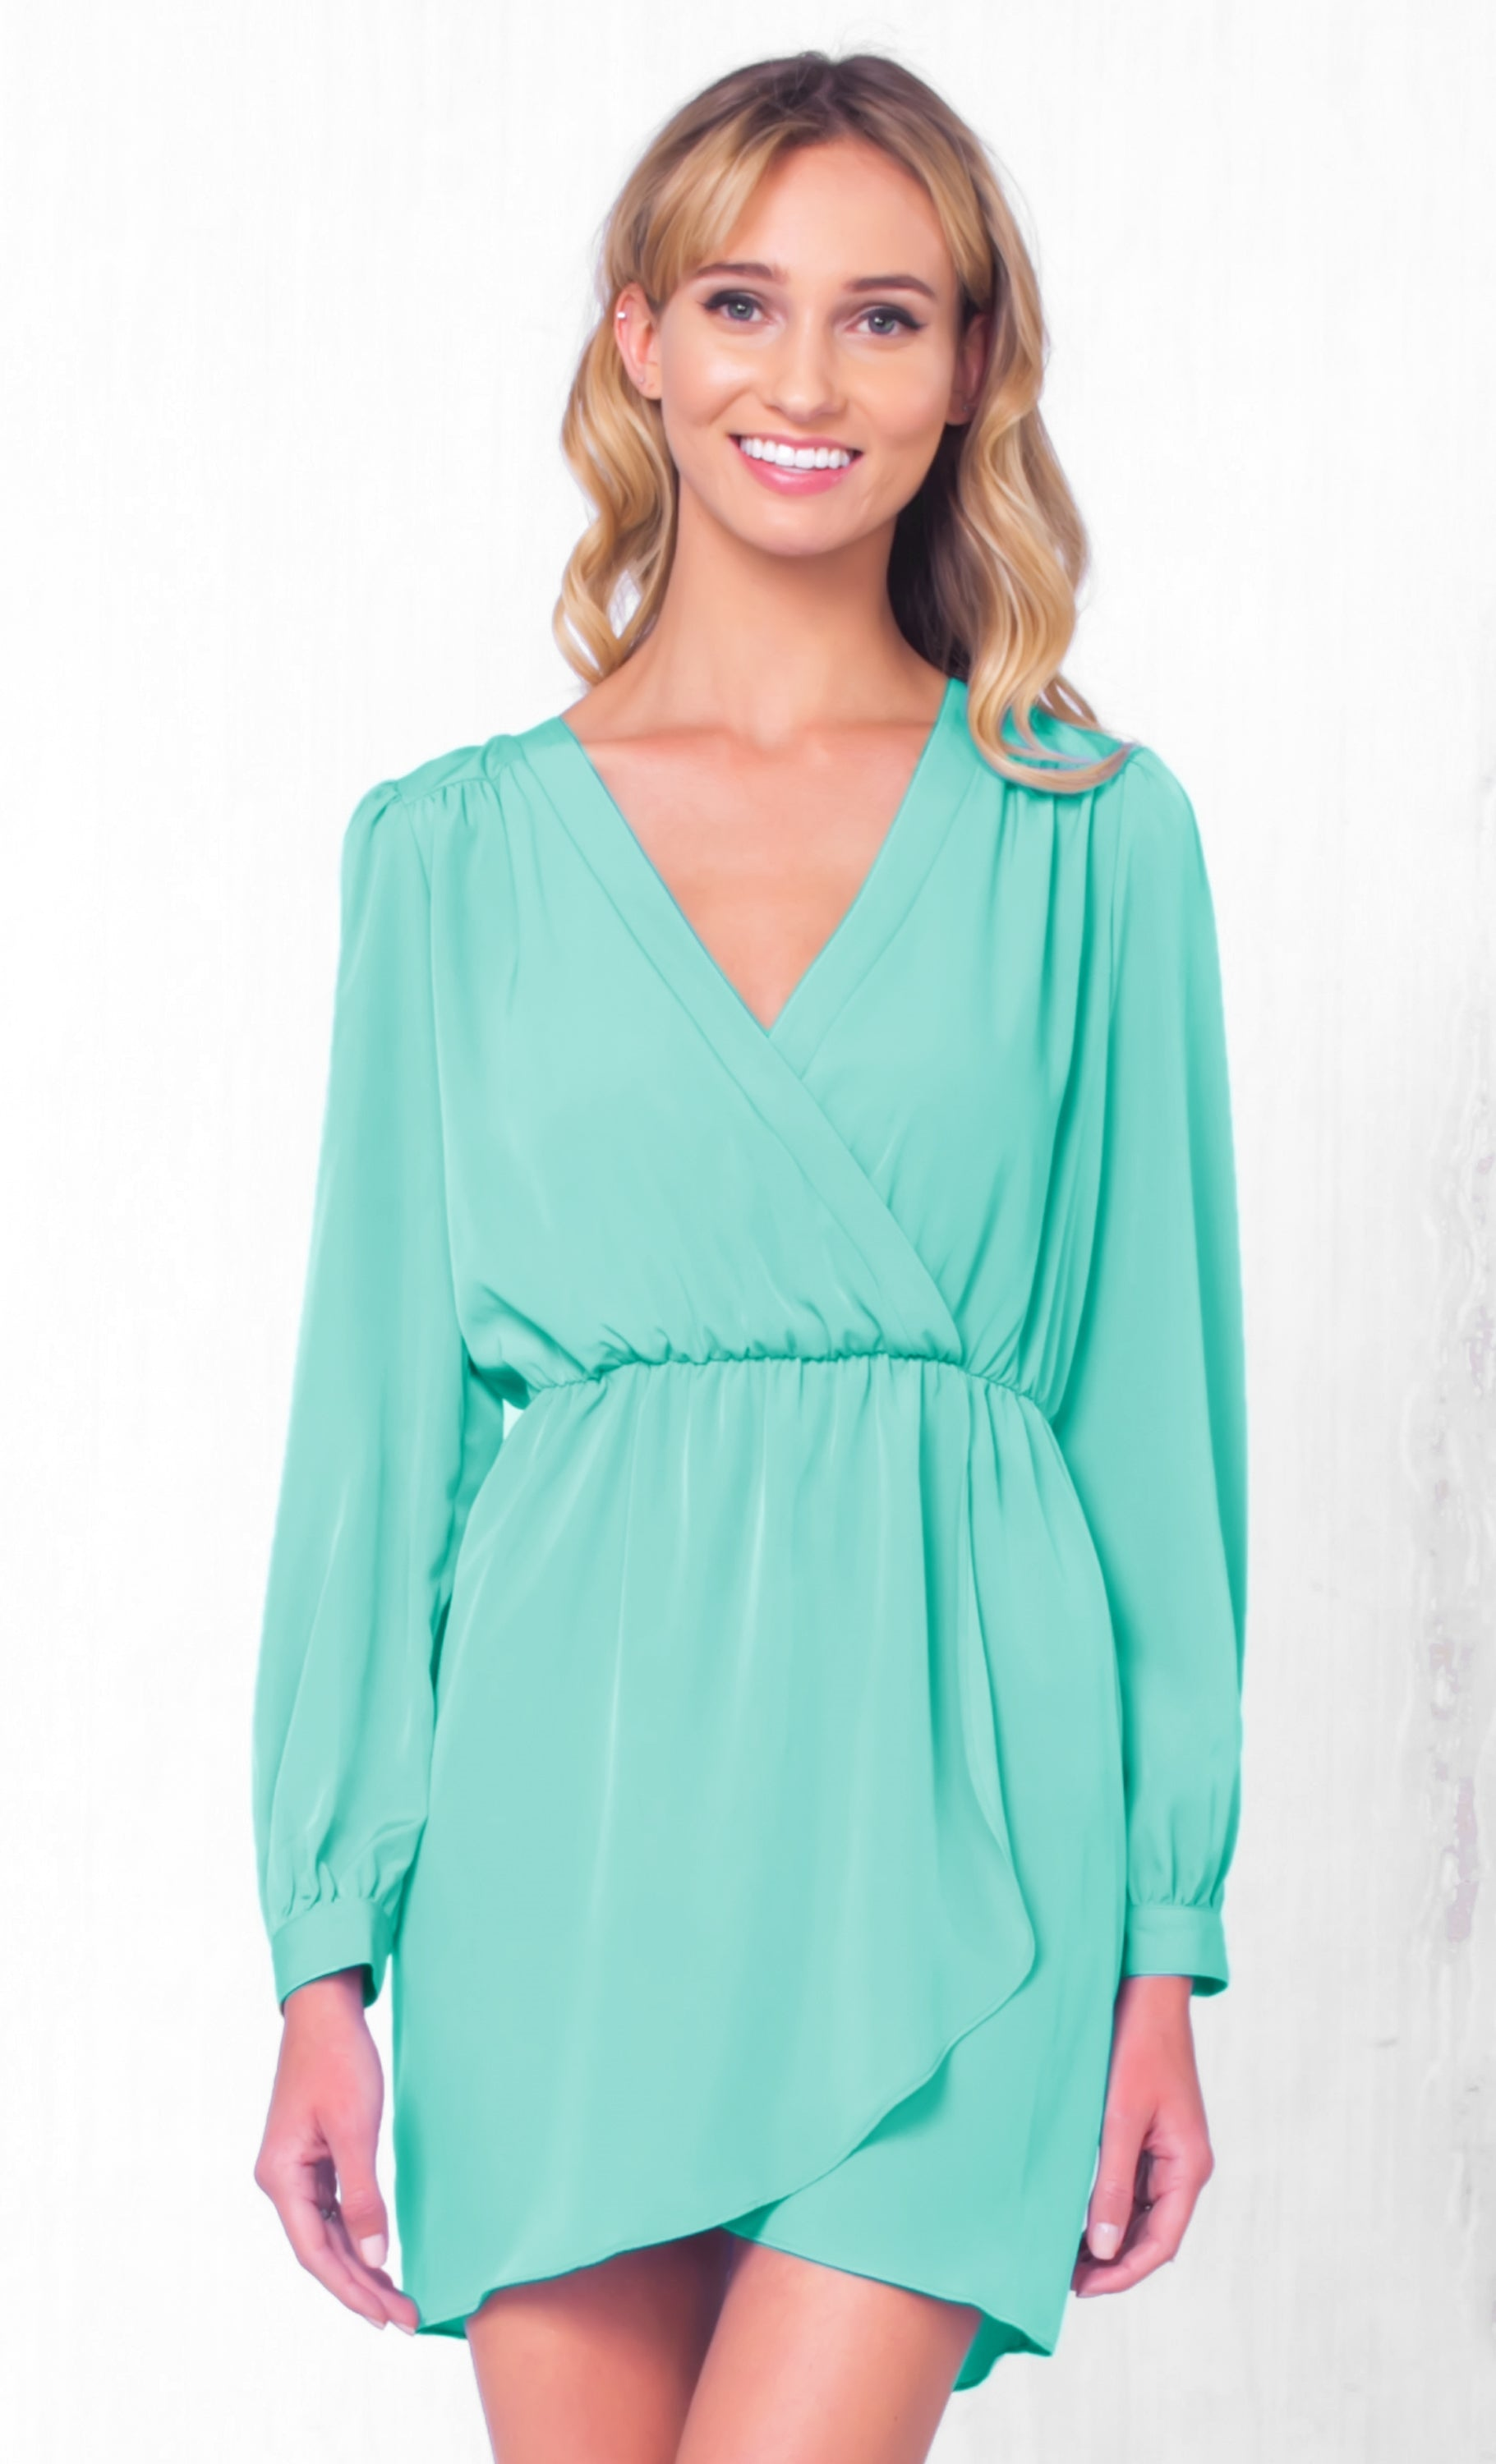 Indie XO That's A Wrap Mint Green Long Sleeve Cross Wrap V Neck Elastic Tulip Chiffon Mini Dress - Just Ours! - Sold Out